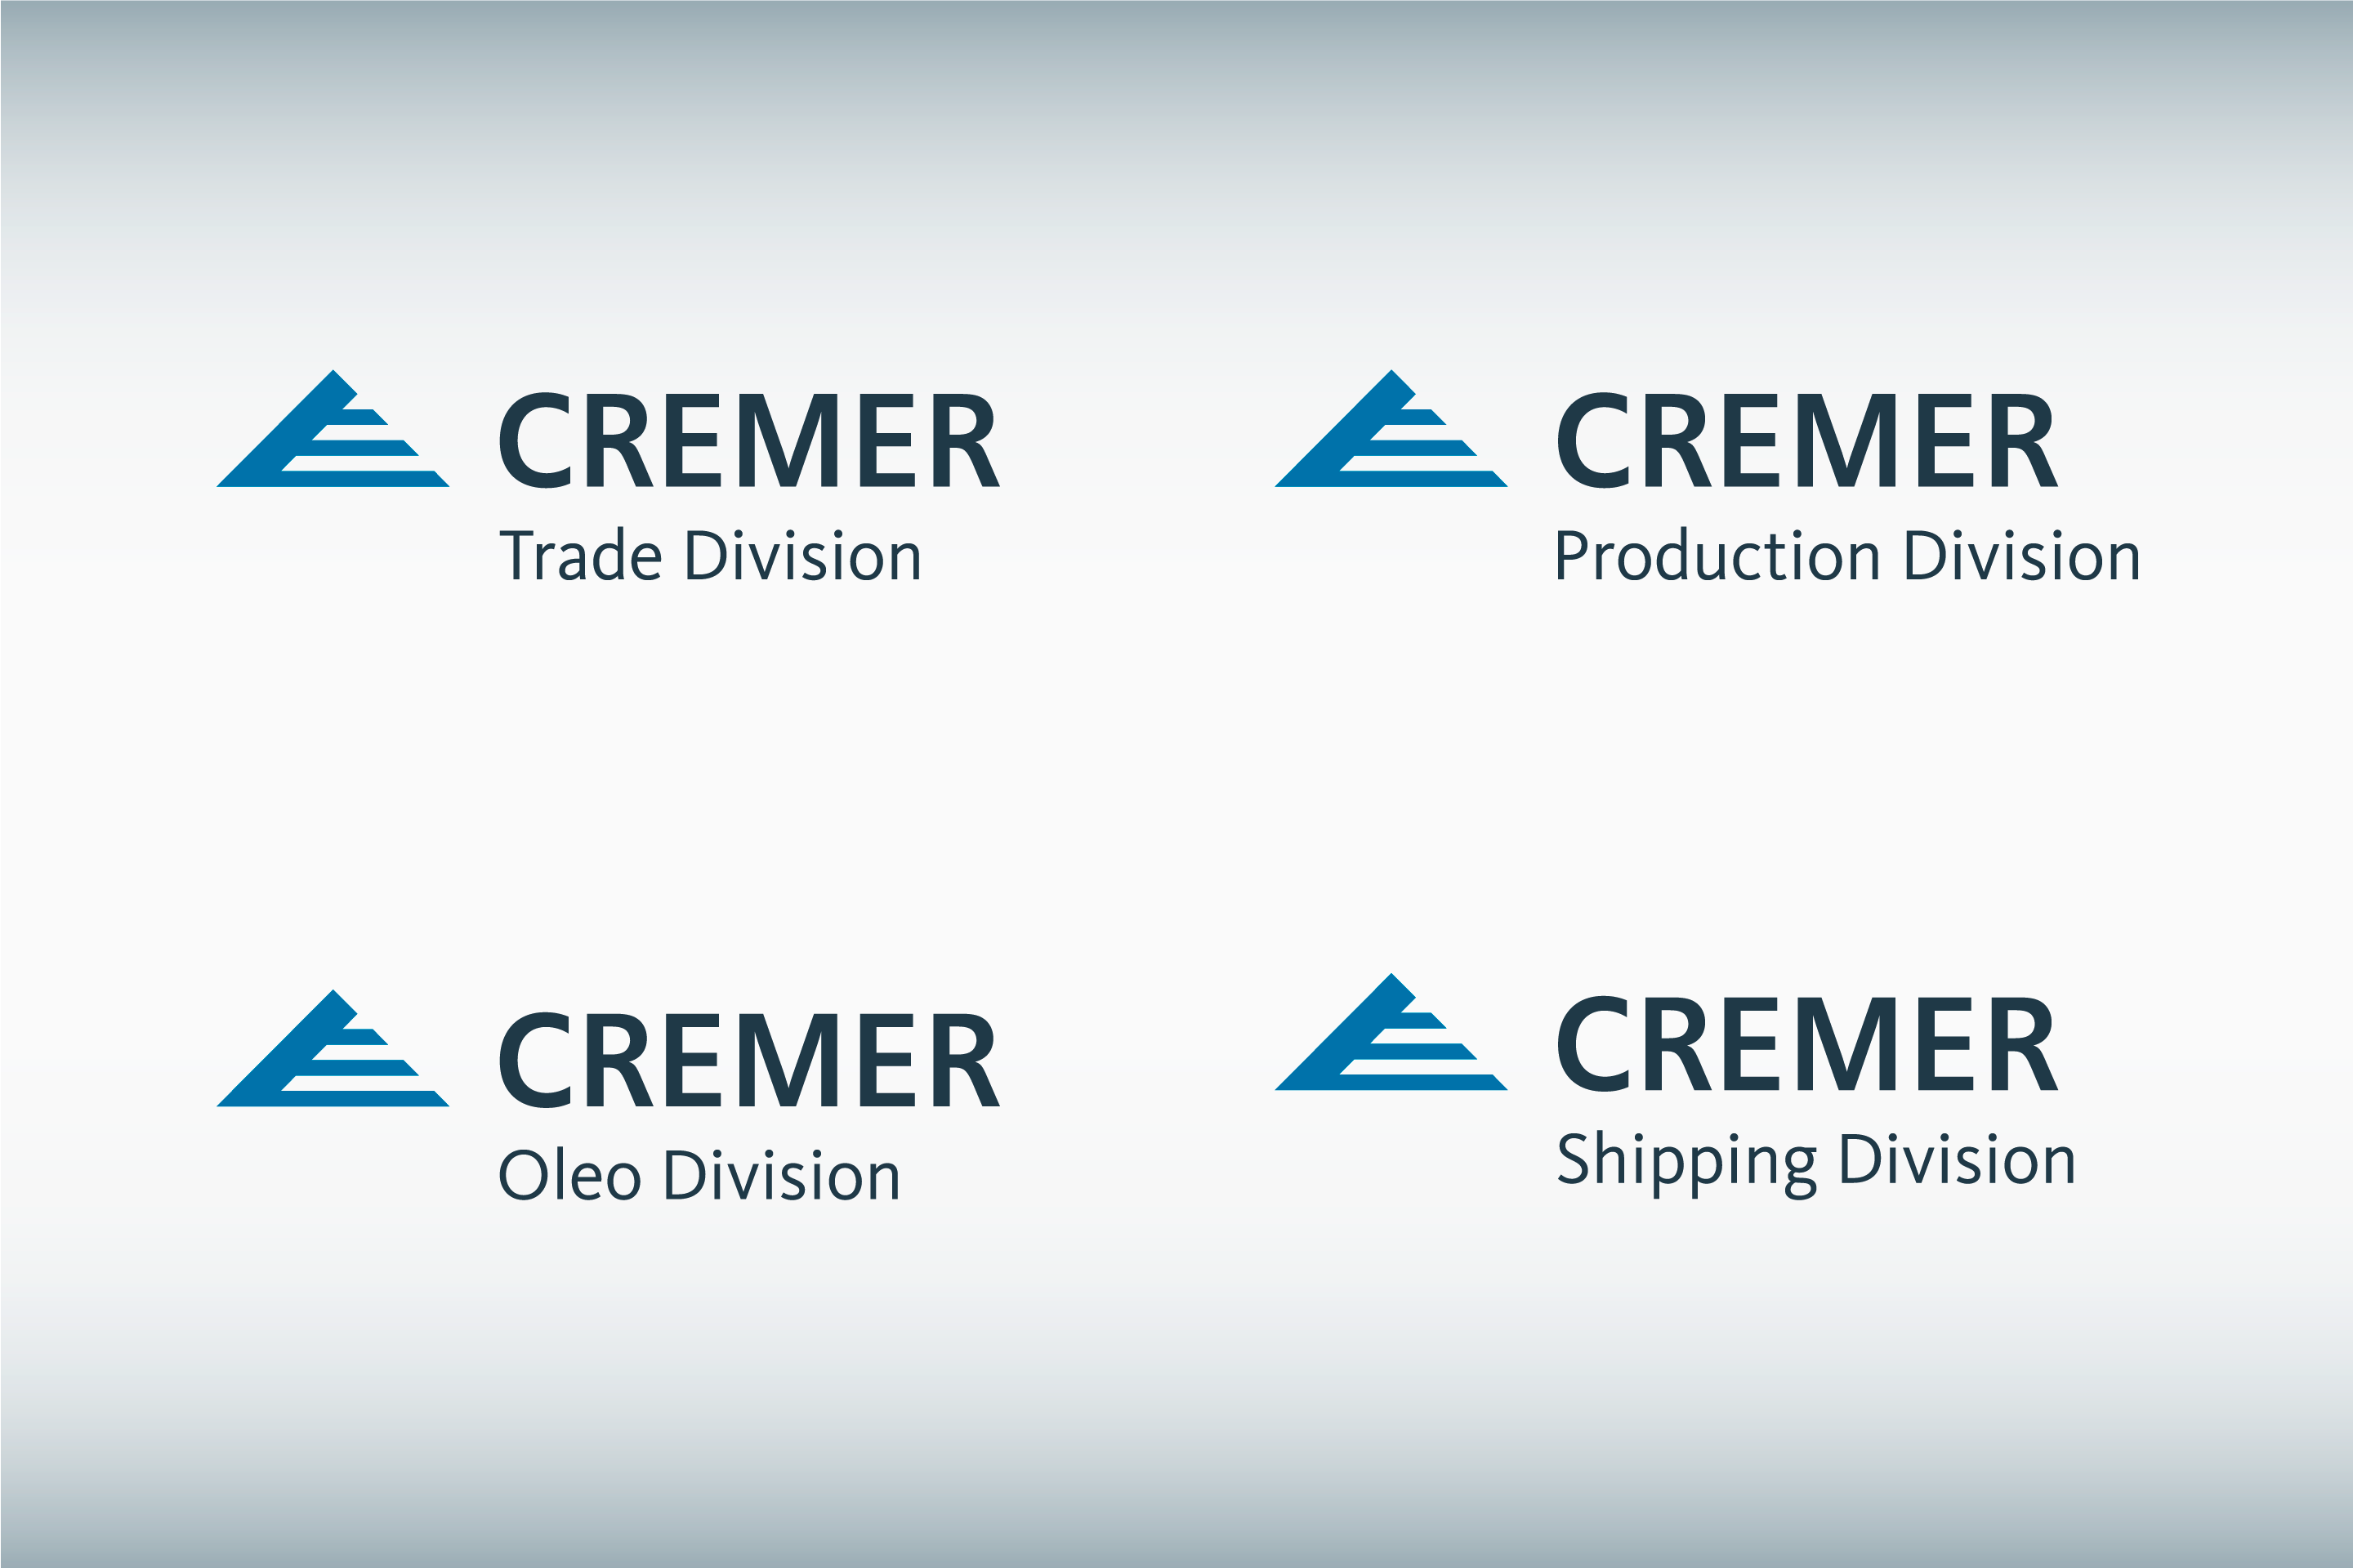 Corporate Identity / Markenarchitektur: Cremer